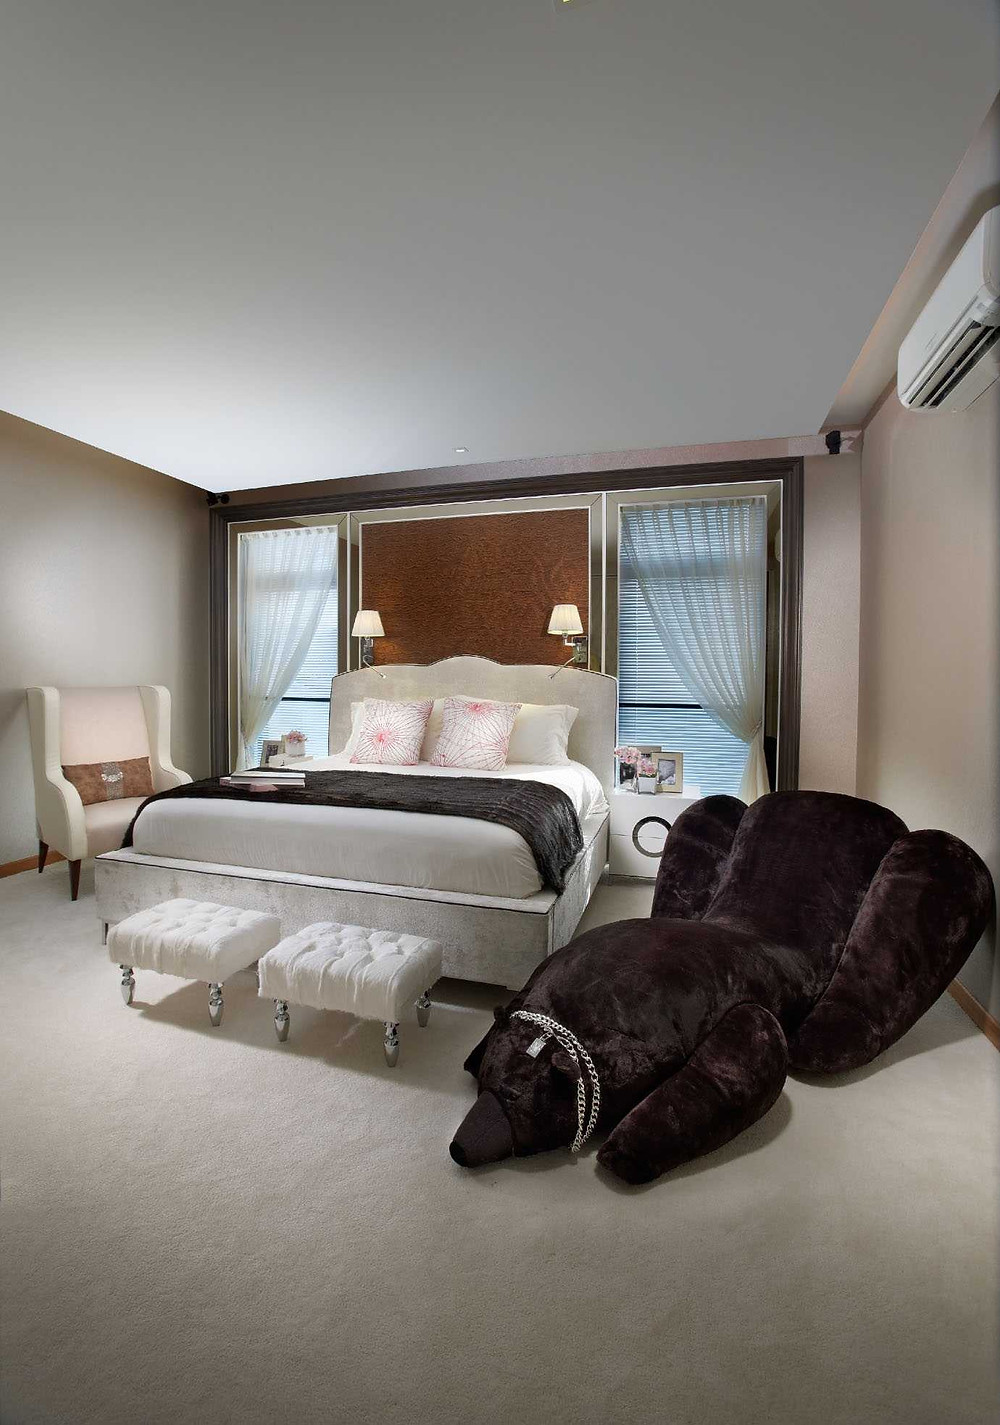 Parkstone Road - Residential Property Singapore - Timeless Designs - Interior - Master Bedroom - Footstool - Bed frame - Window - Curtains - Best Interior Design Singapore - Designworx Interior Consultant